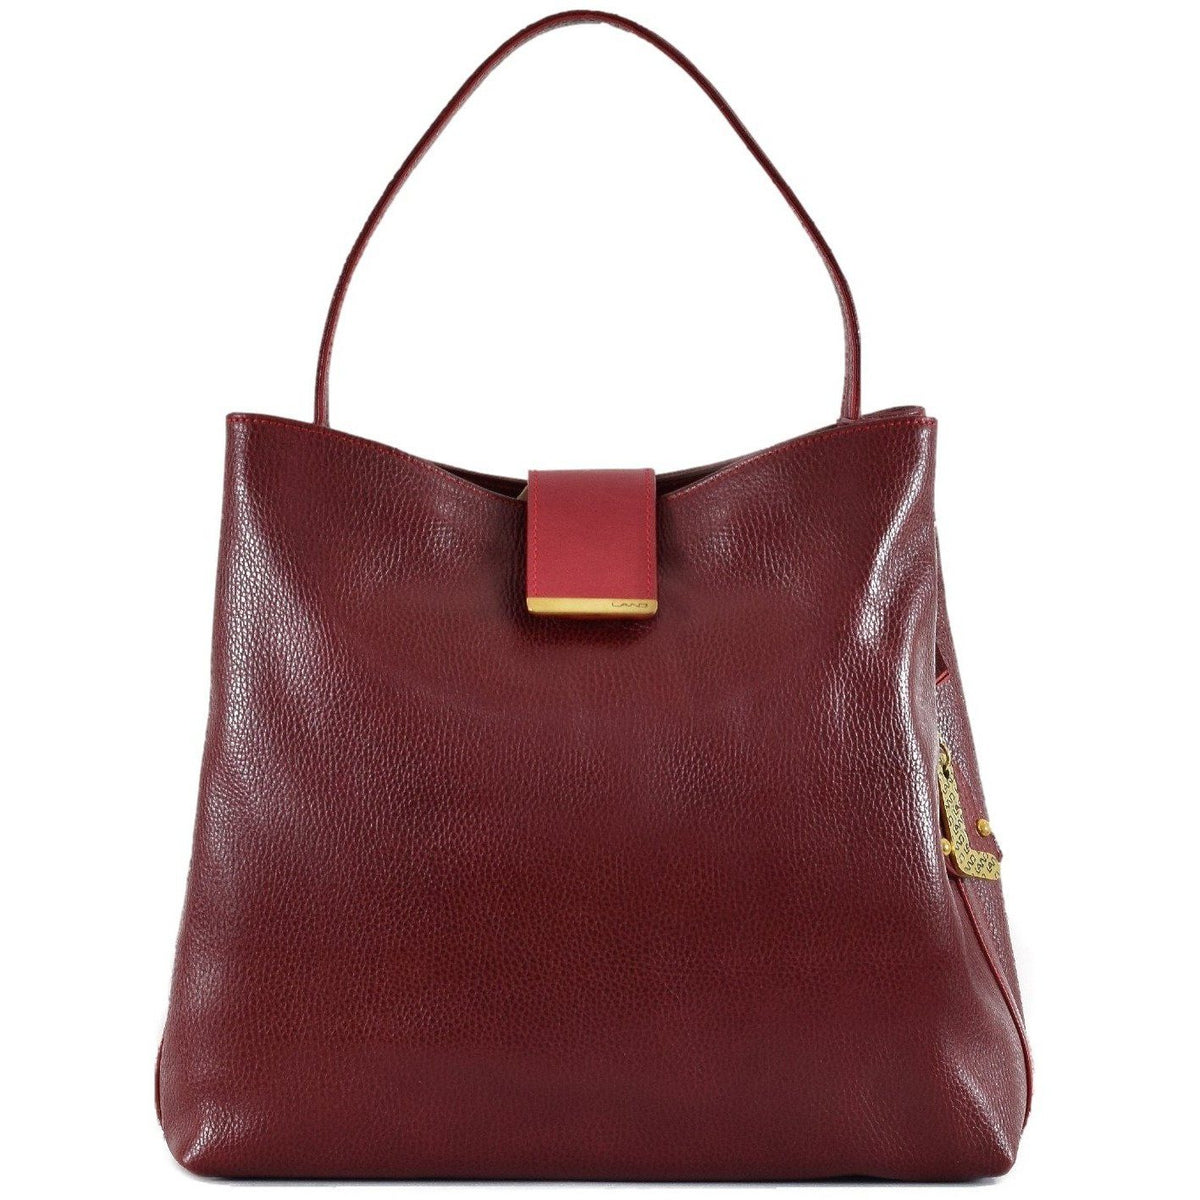 Bisenzio Emmanuelle Shoulder Bag